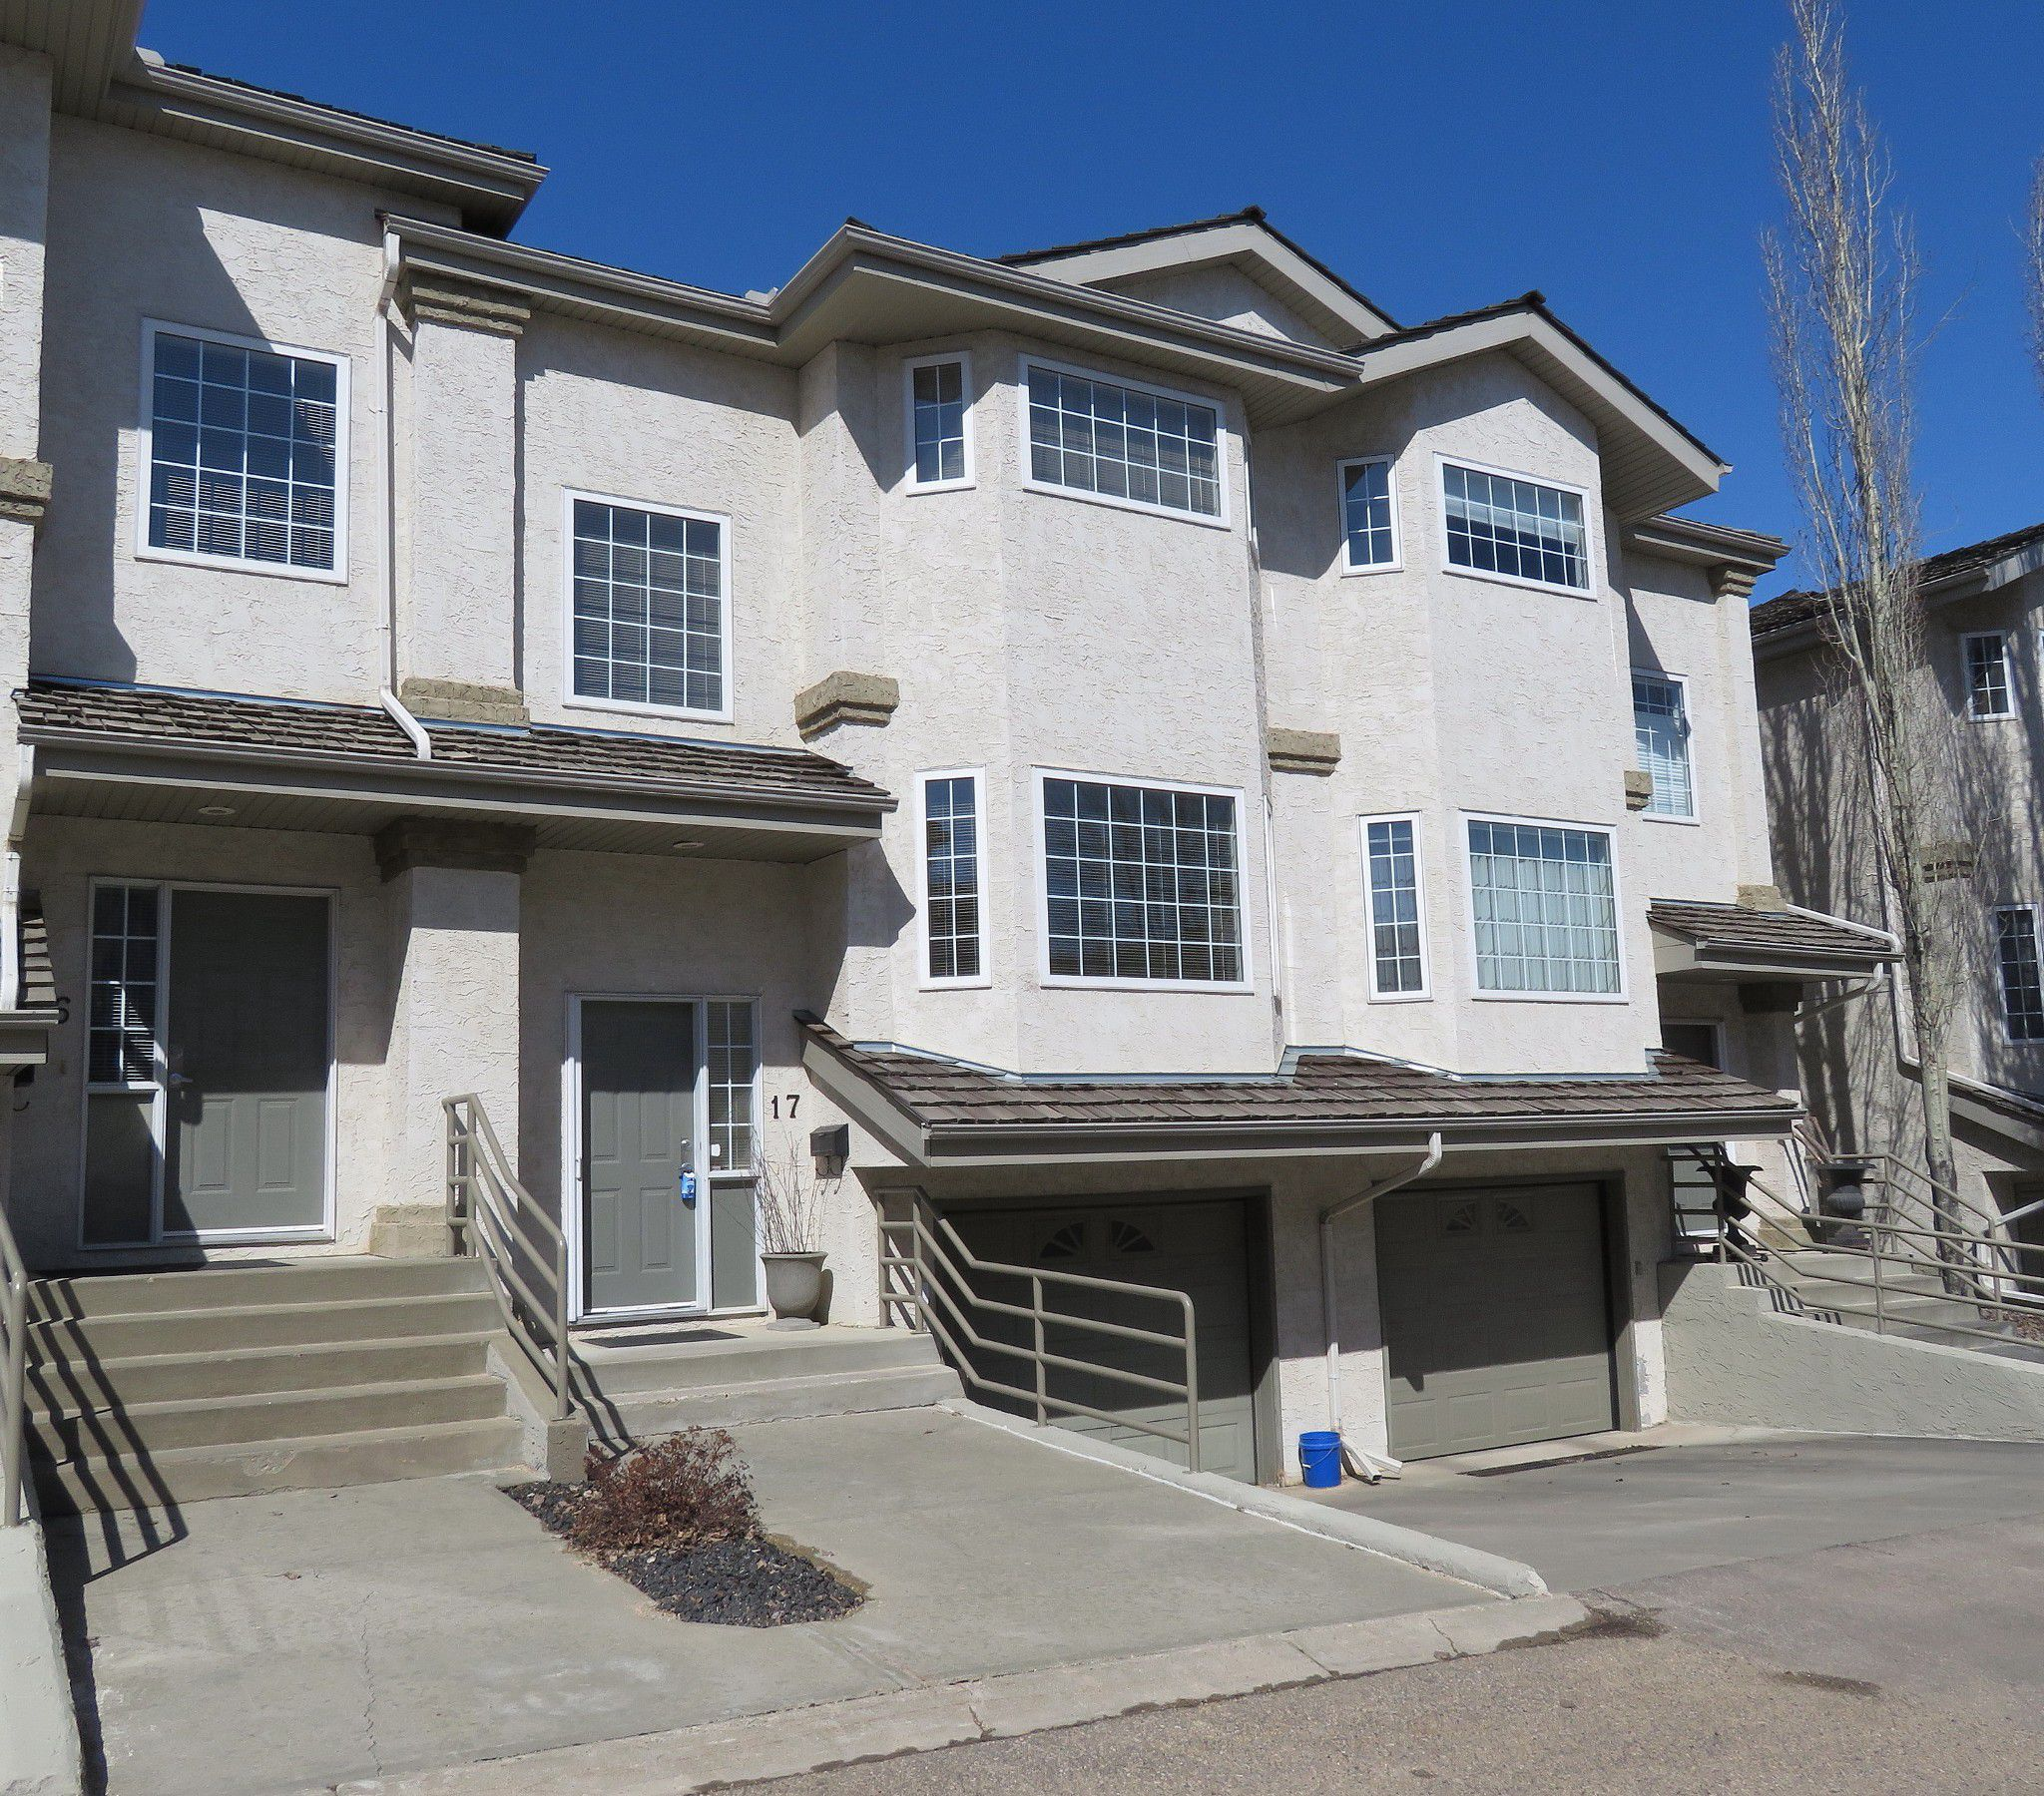 Main Photo: 17 1295 Carter Crest Road in EDMONTON: Townhouse for sale